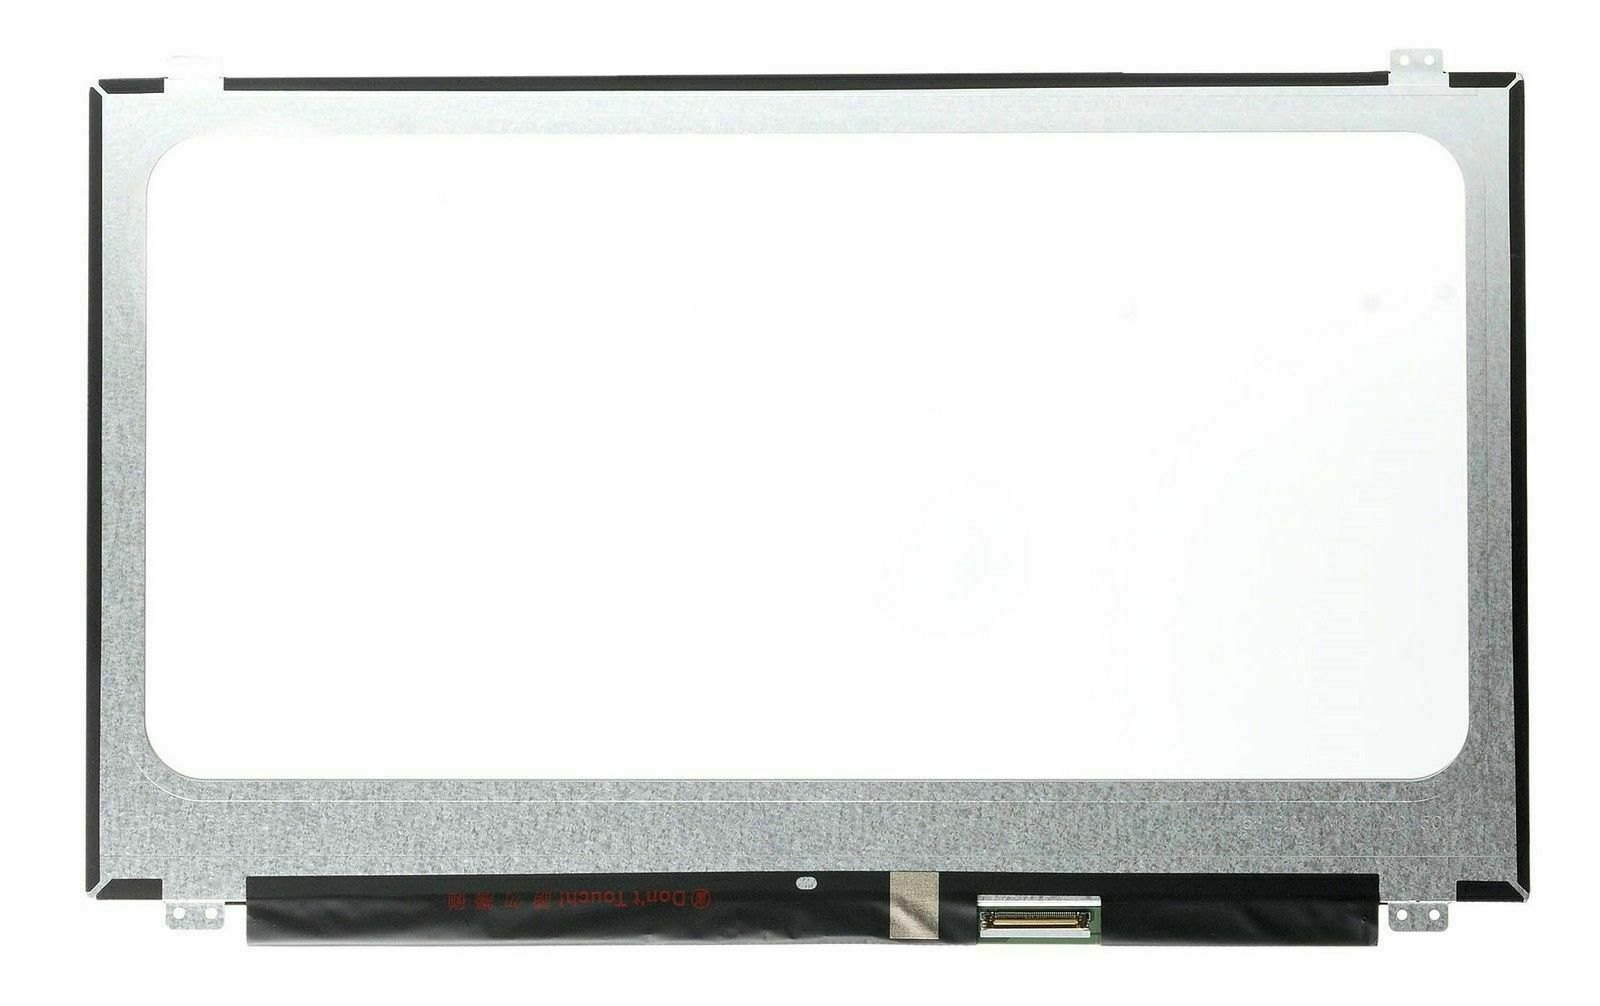 Dell Latitude 3580 LCD Screen Glossy HD 1366x768 Display 15.6 in OnCell Touch - $97.91